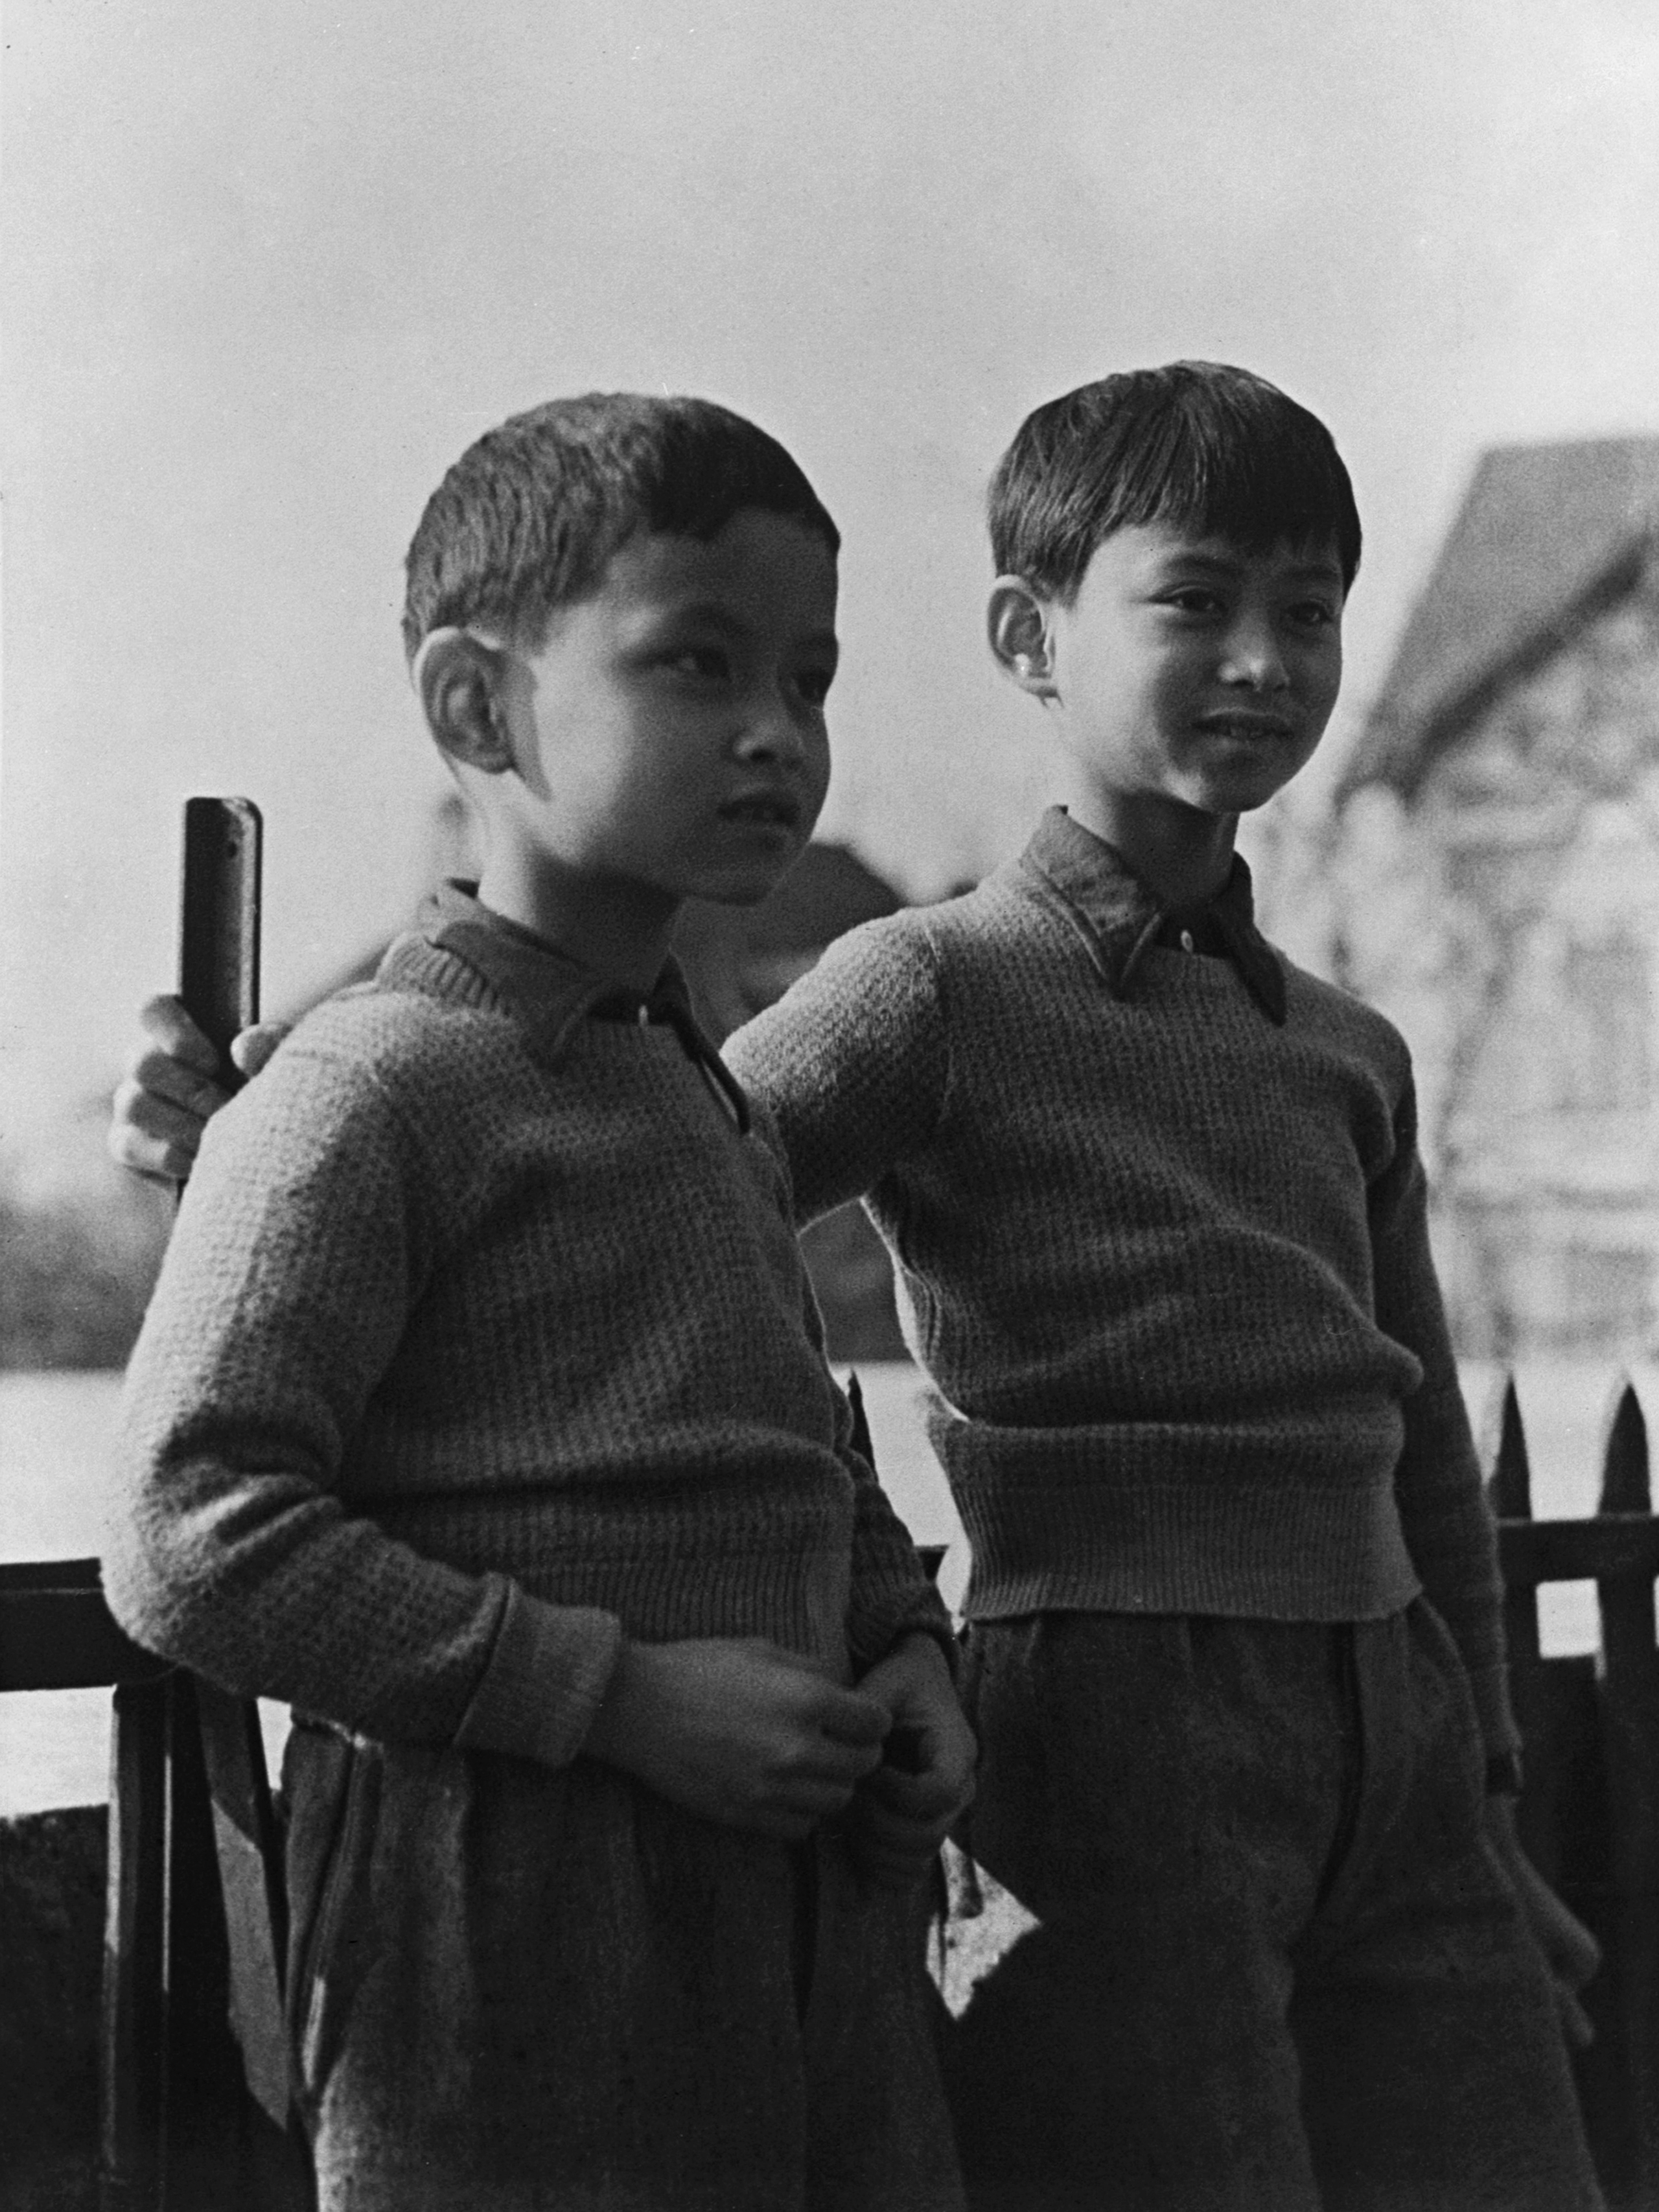 Prince Bhumibol (left), now King Bhumibol Adulyadej, with his brother Prince Ananda in Lausanne, Switzerland, March 7, 1935.